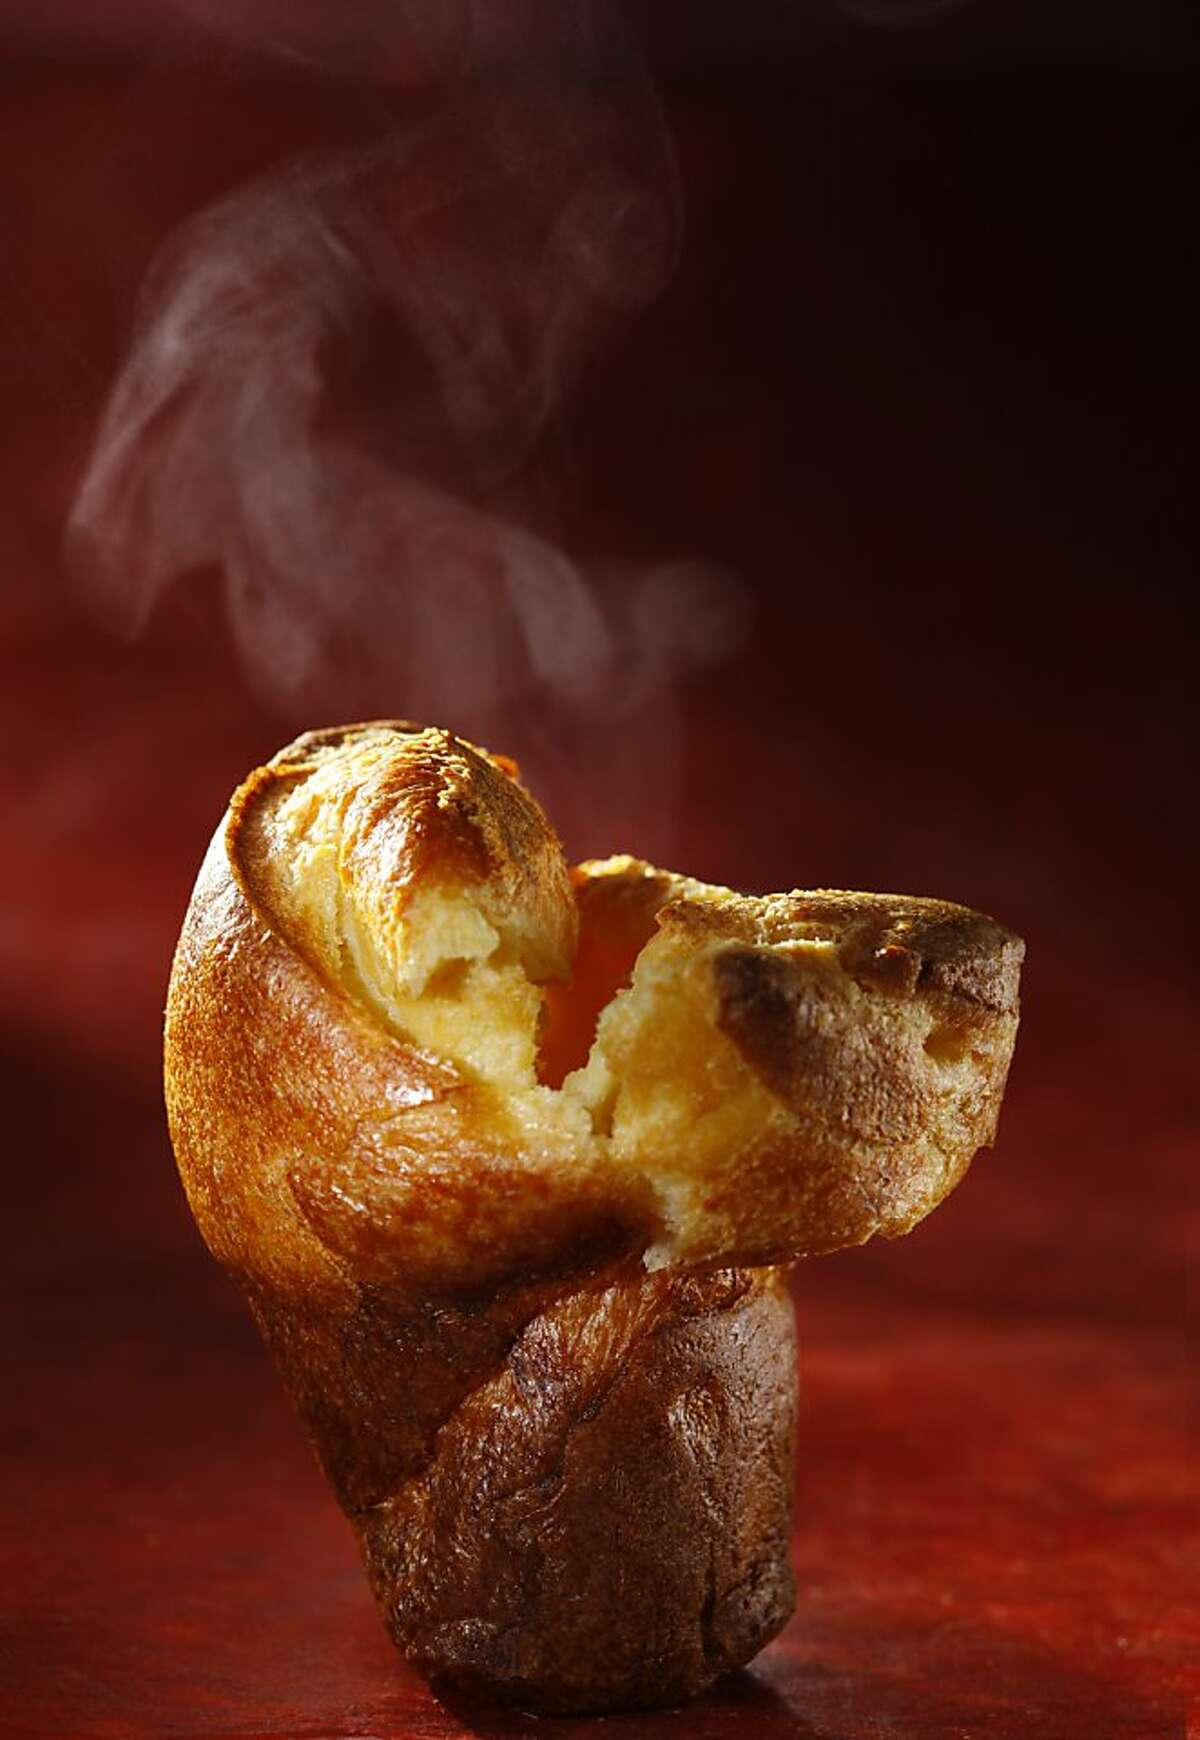 Popover as seen in San Francisco, California, on May 29, 2013. Food styled by Jillian Welsh.